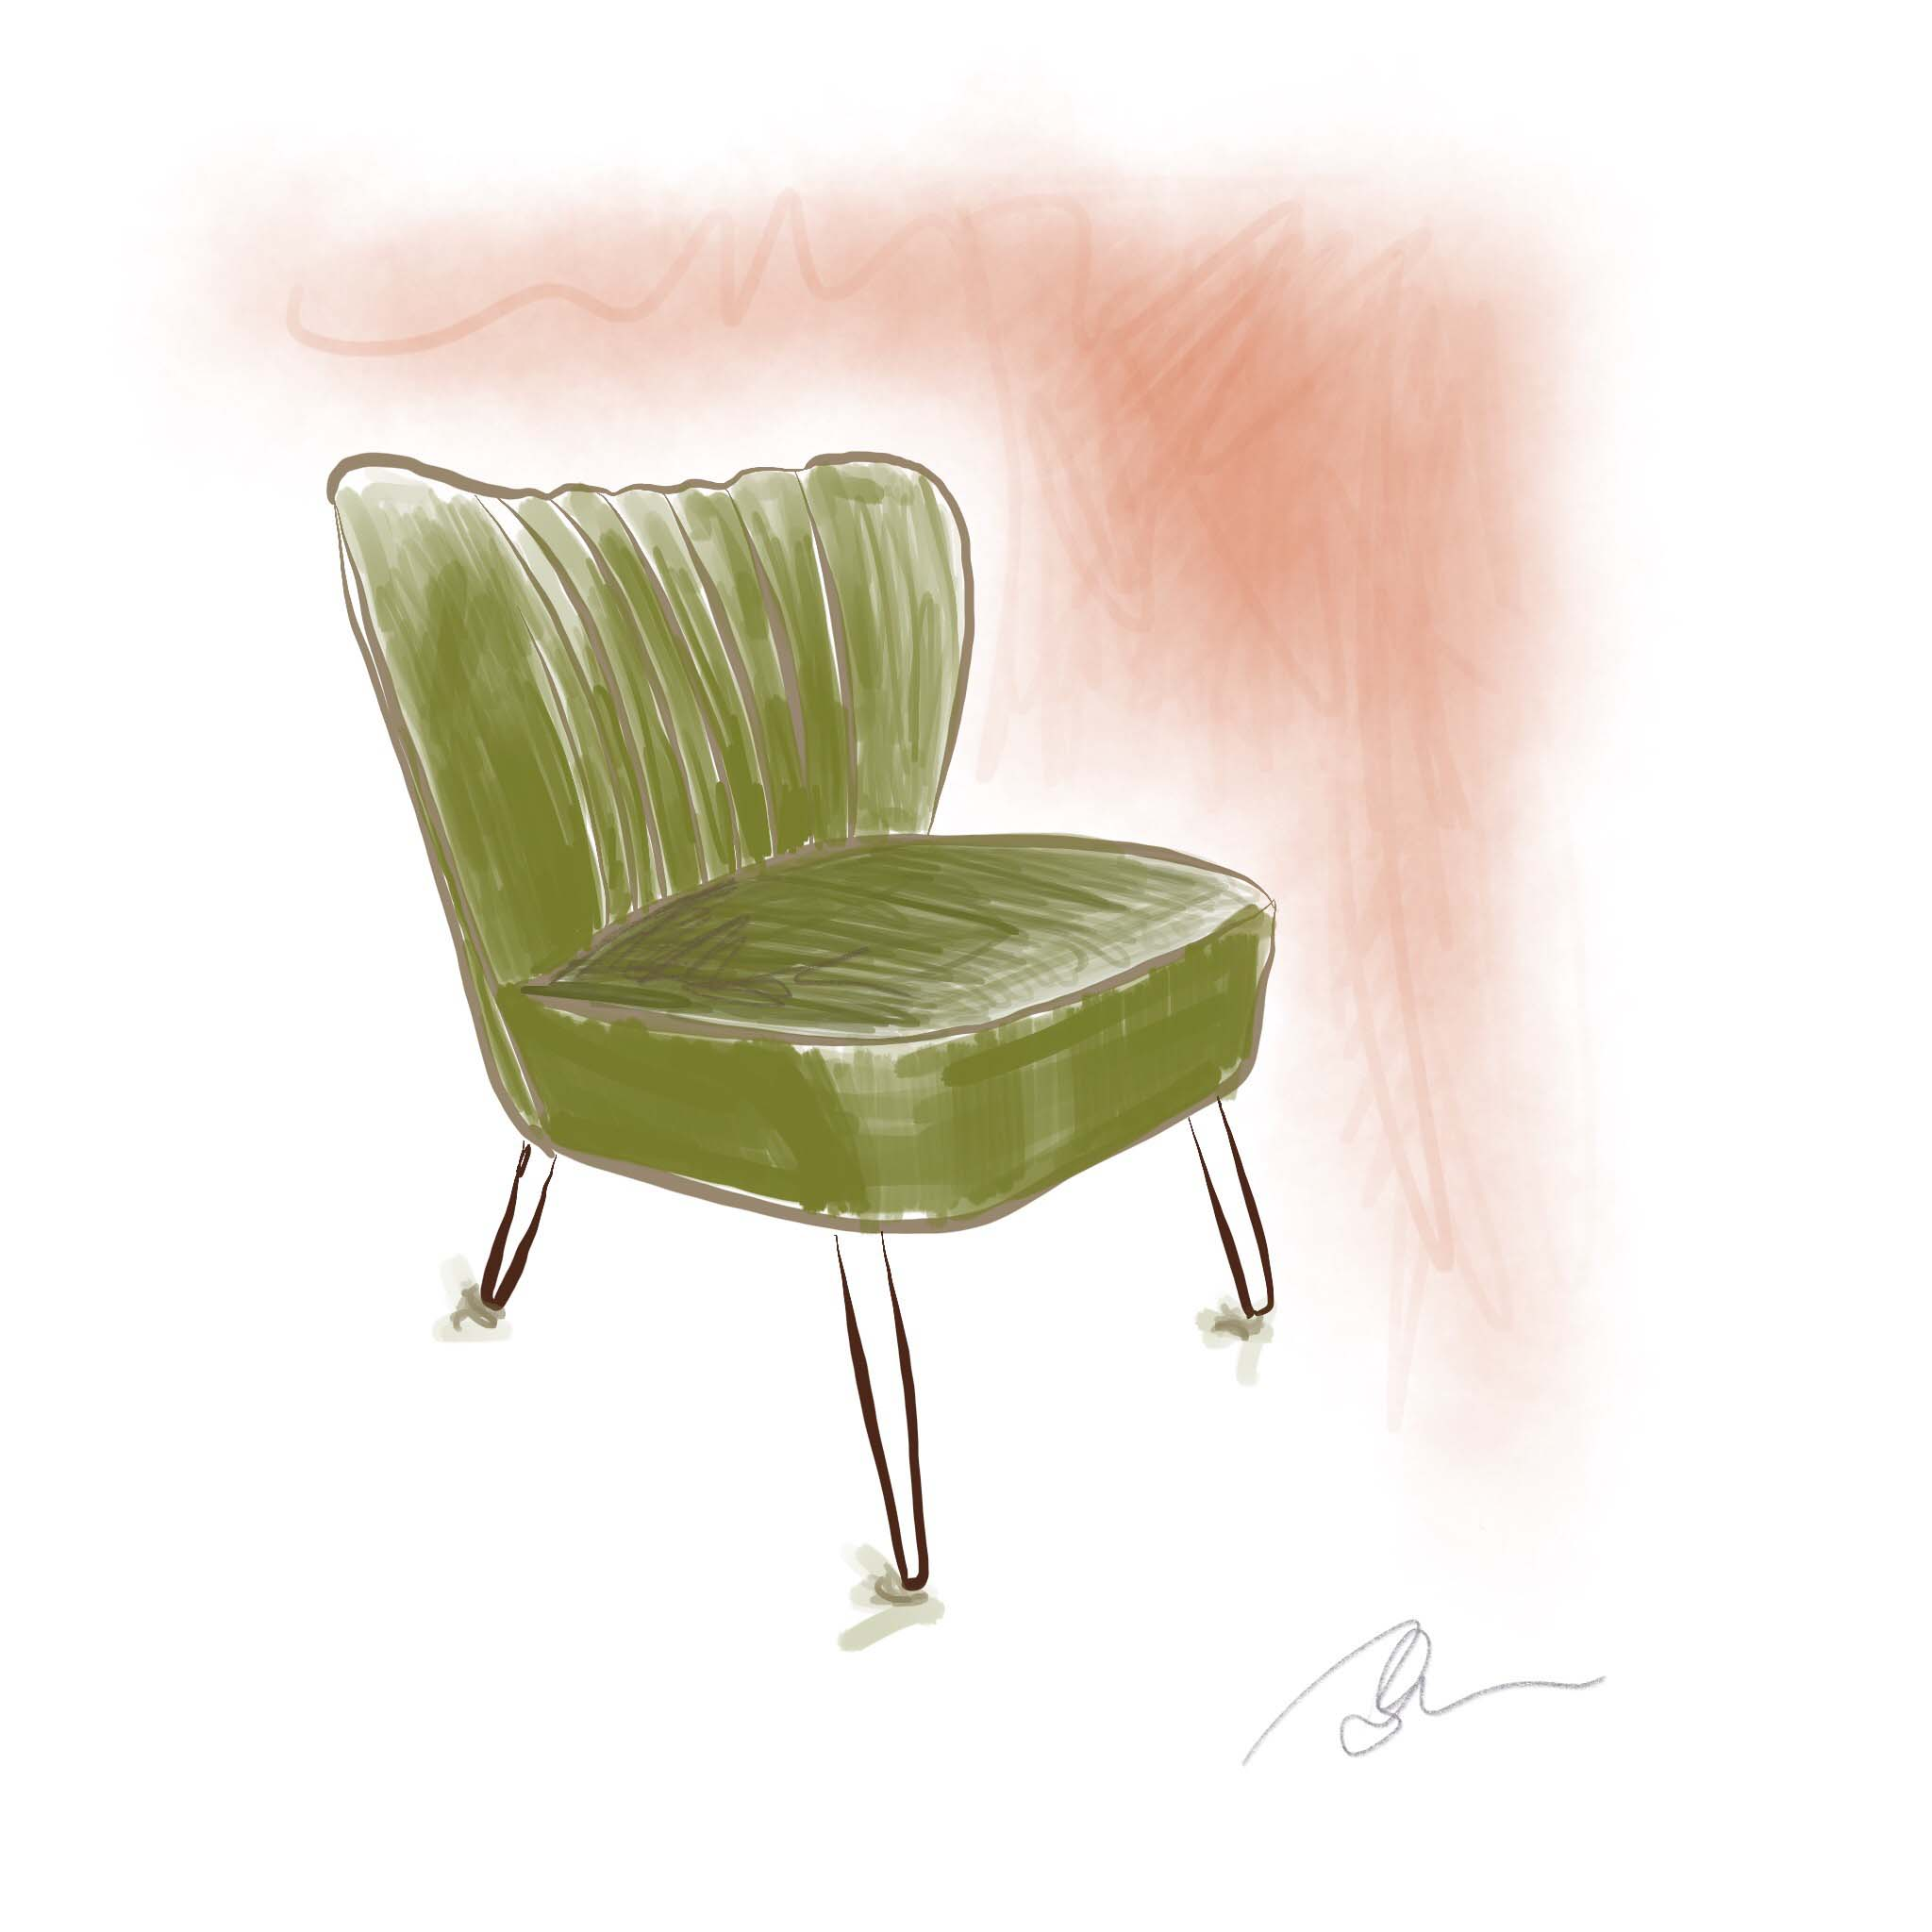 1950's Parisian Cocktail Chair ~ Digital Art ©Beth Ortman